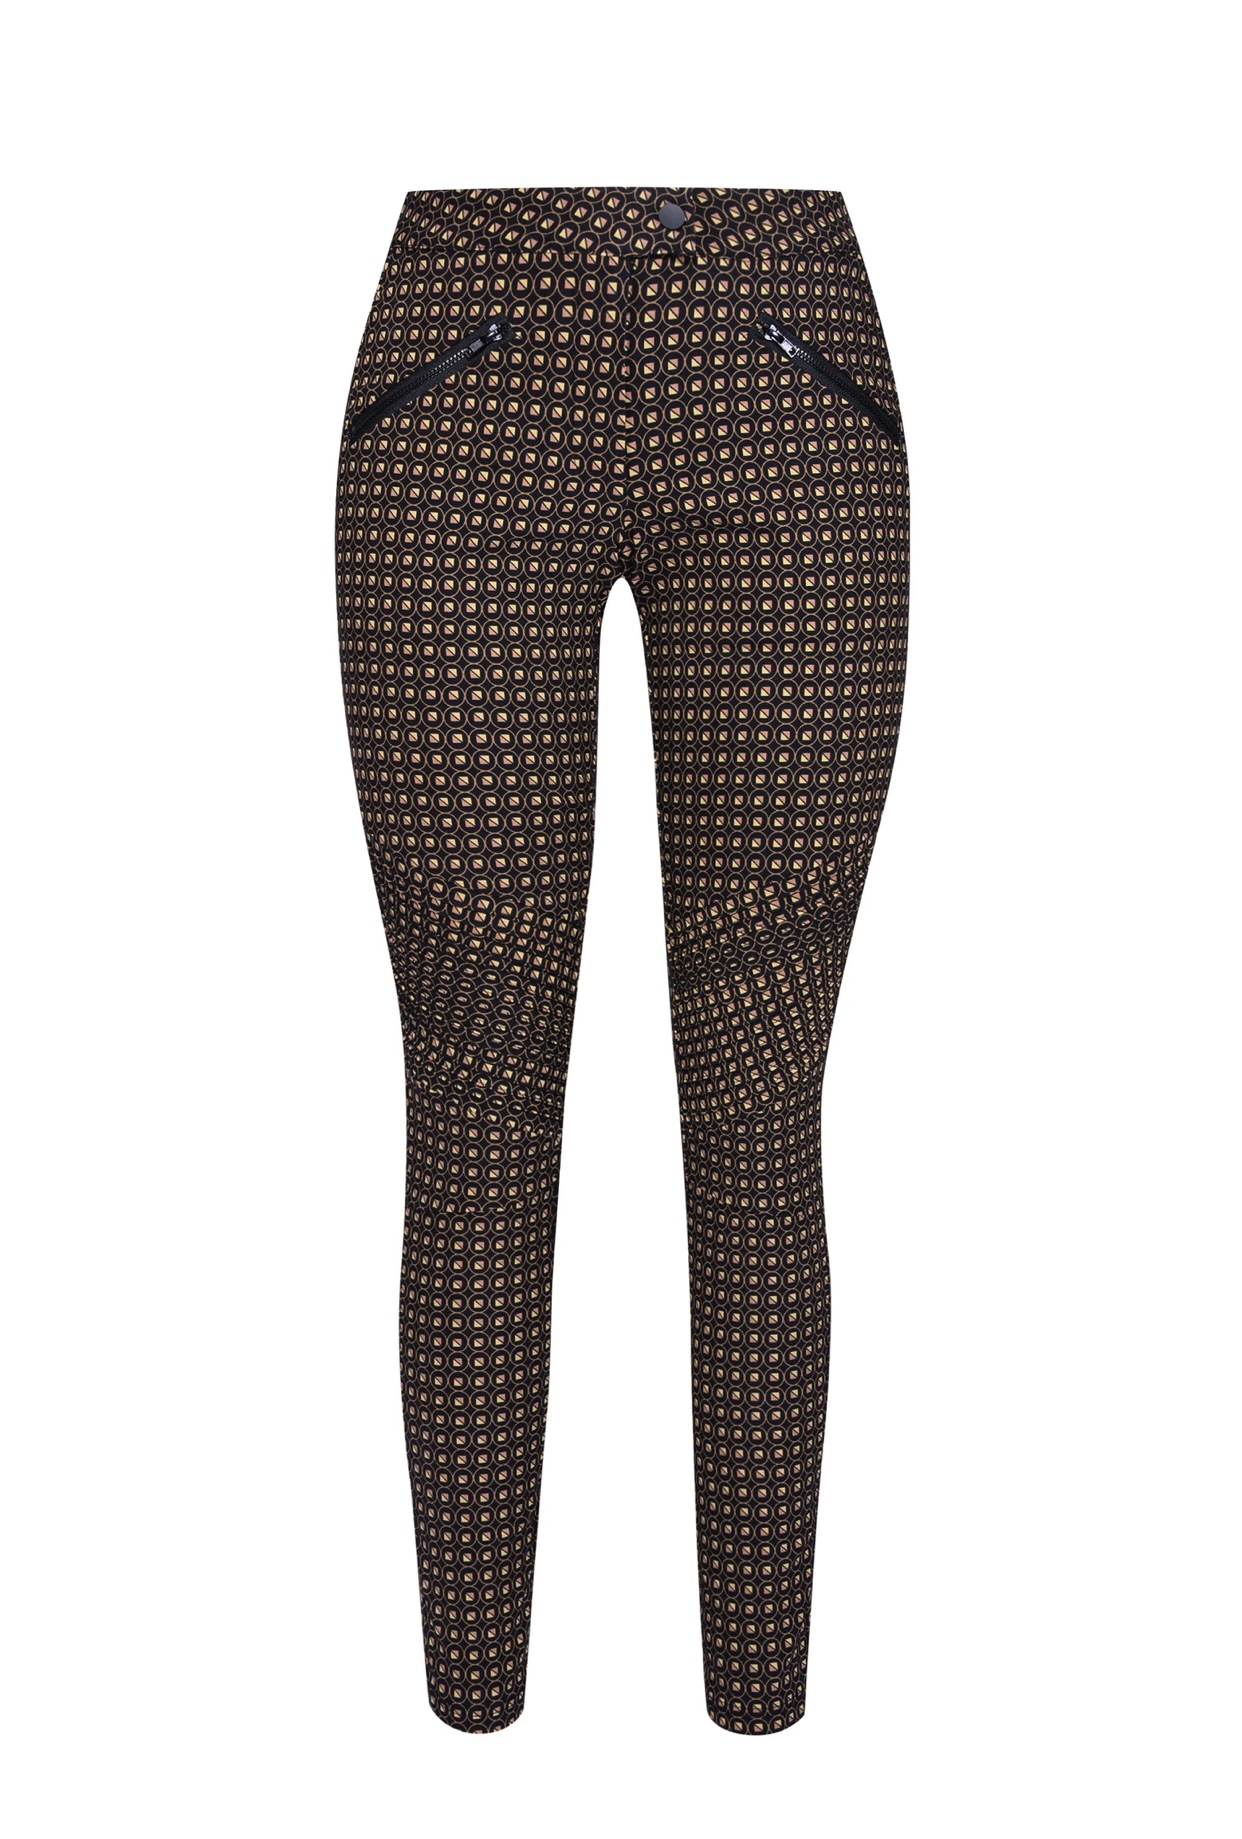 NÜ DANMARK INEZ PATTERNED TROUSERS BLACK MIX IMAGE BY ME